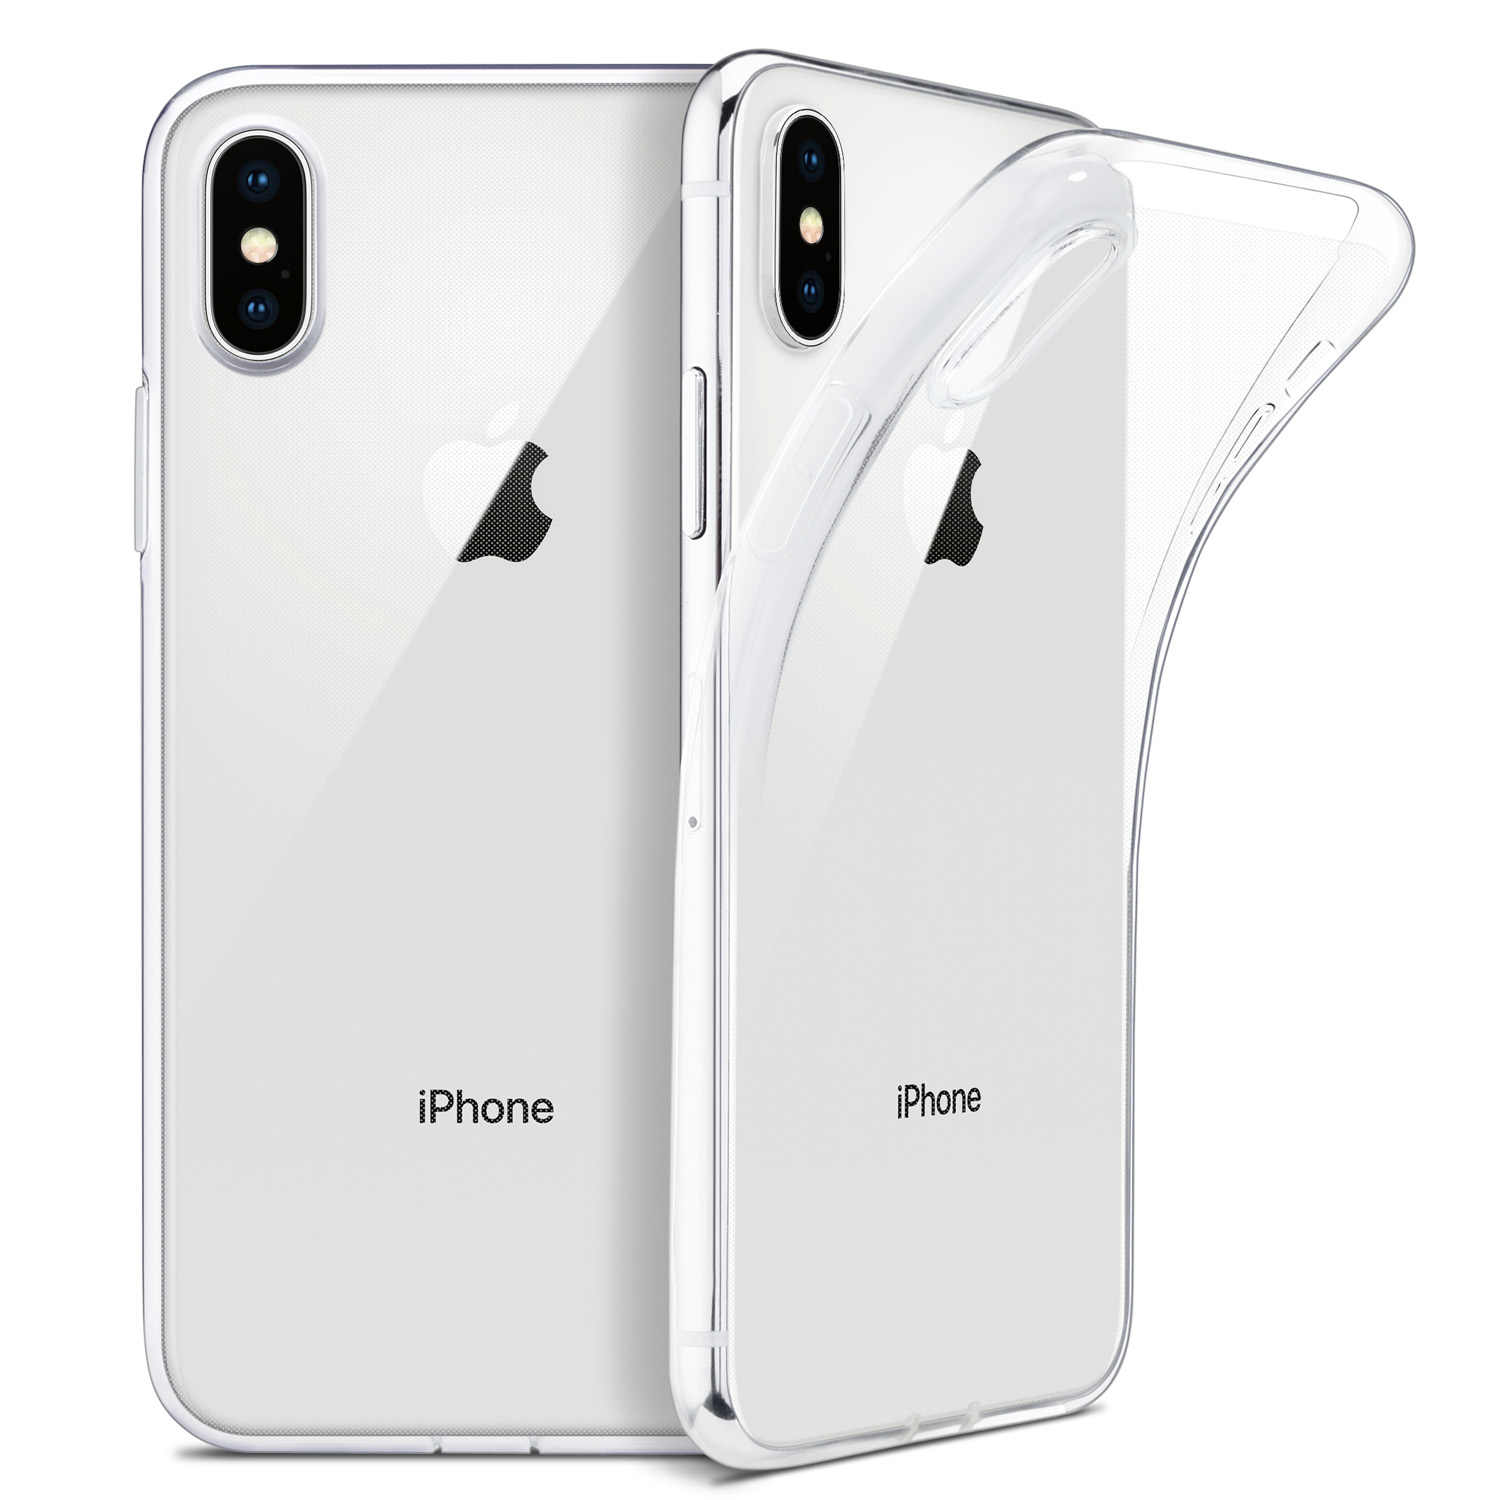 Coque sztywny futerał na telefon do iPhone 11 pro XS MAX 8 7 6 6S Plus X 5 5S SE XR